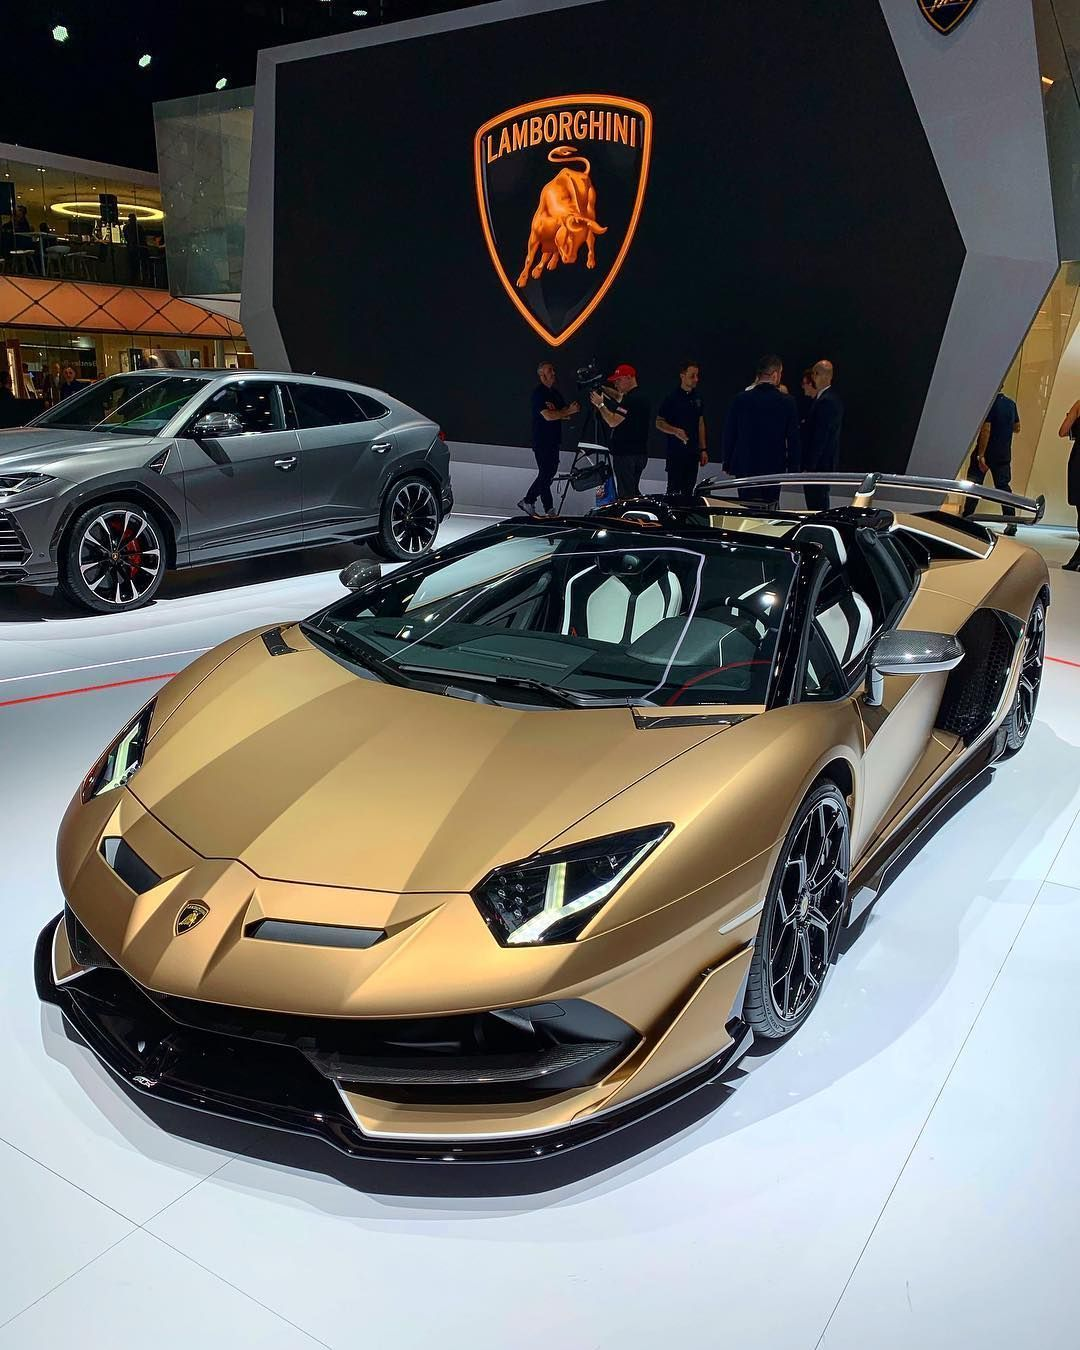 The Best Luxury Car Golden Sports Car Amazing Cars Cool Cars Luxury Lifestyle In 2020 Best Luxury Cars Luxury Cars Sports Cars Luxury